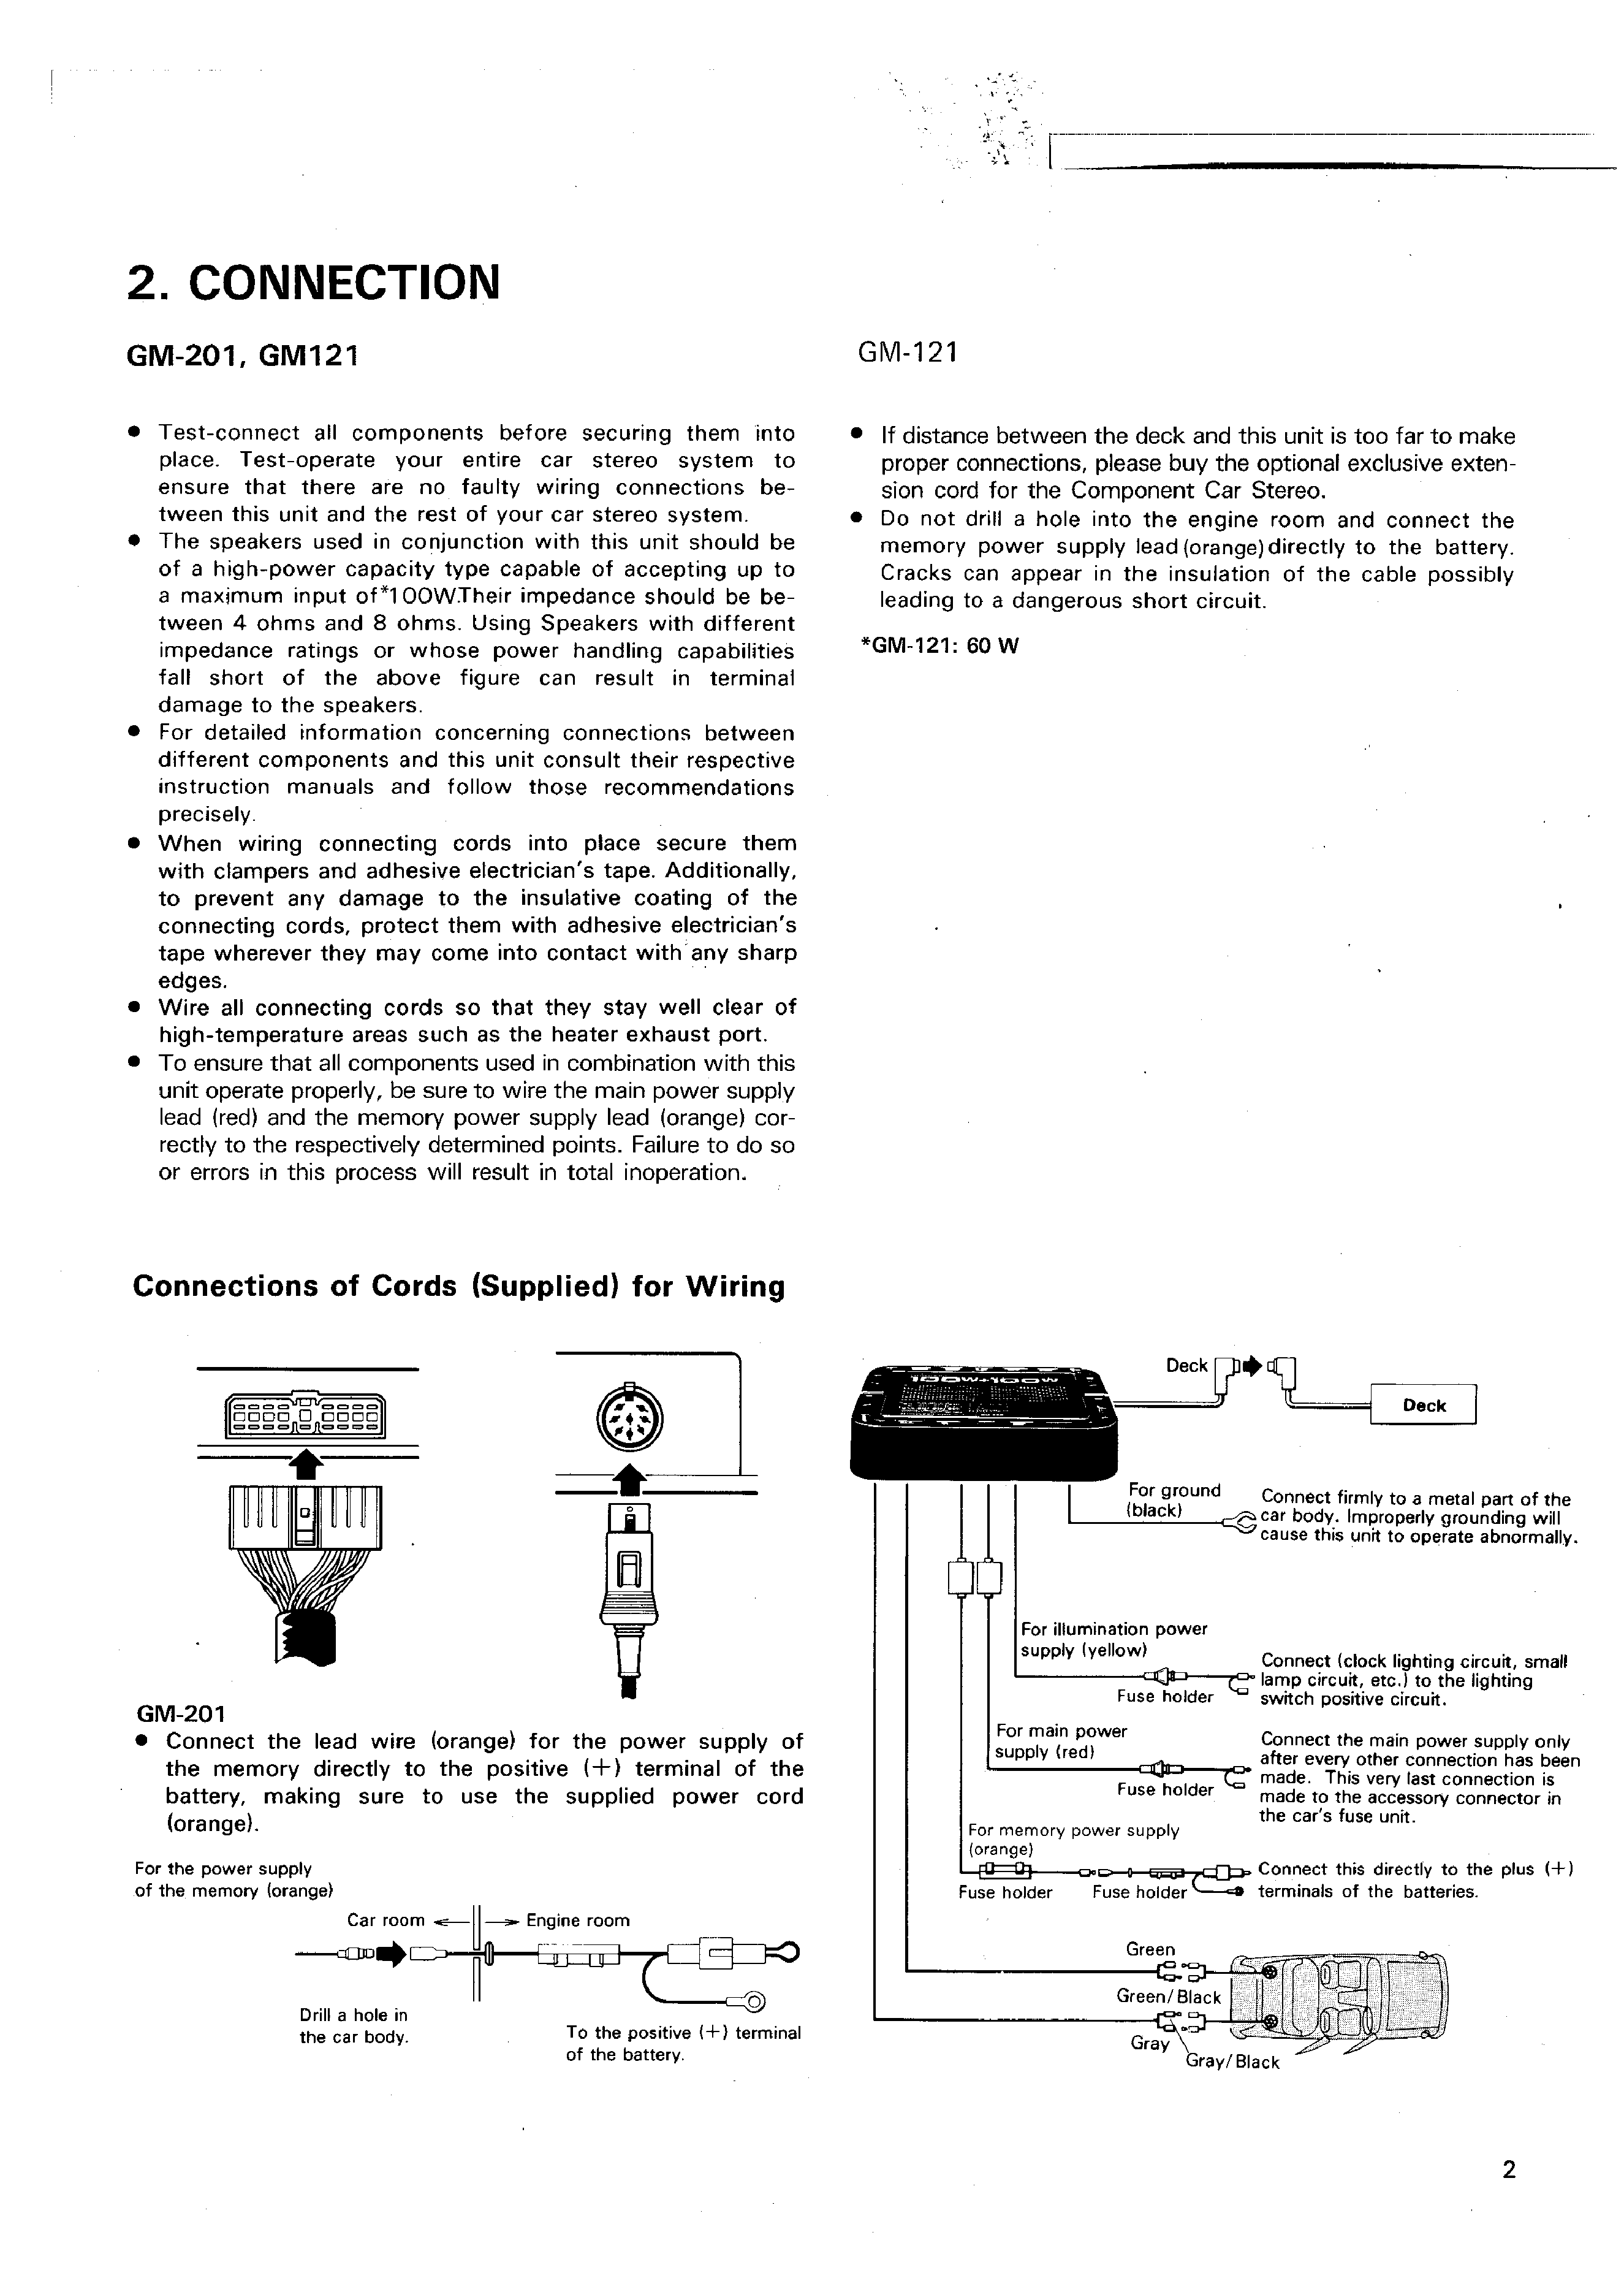 Service Manual For Pioneer Gm201